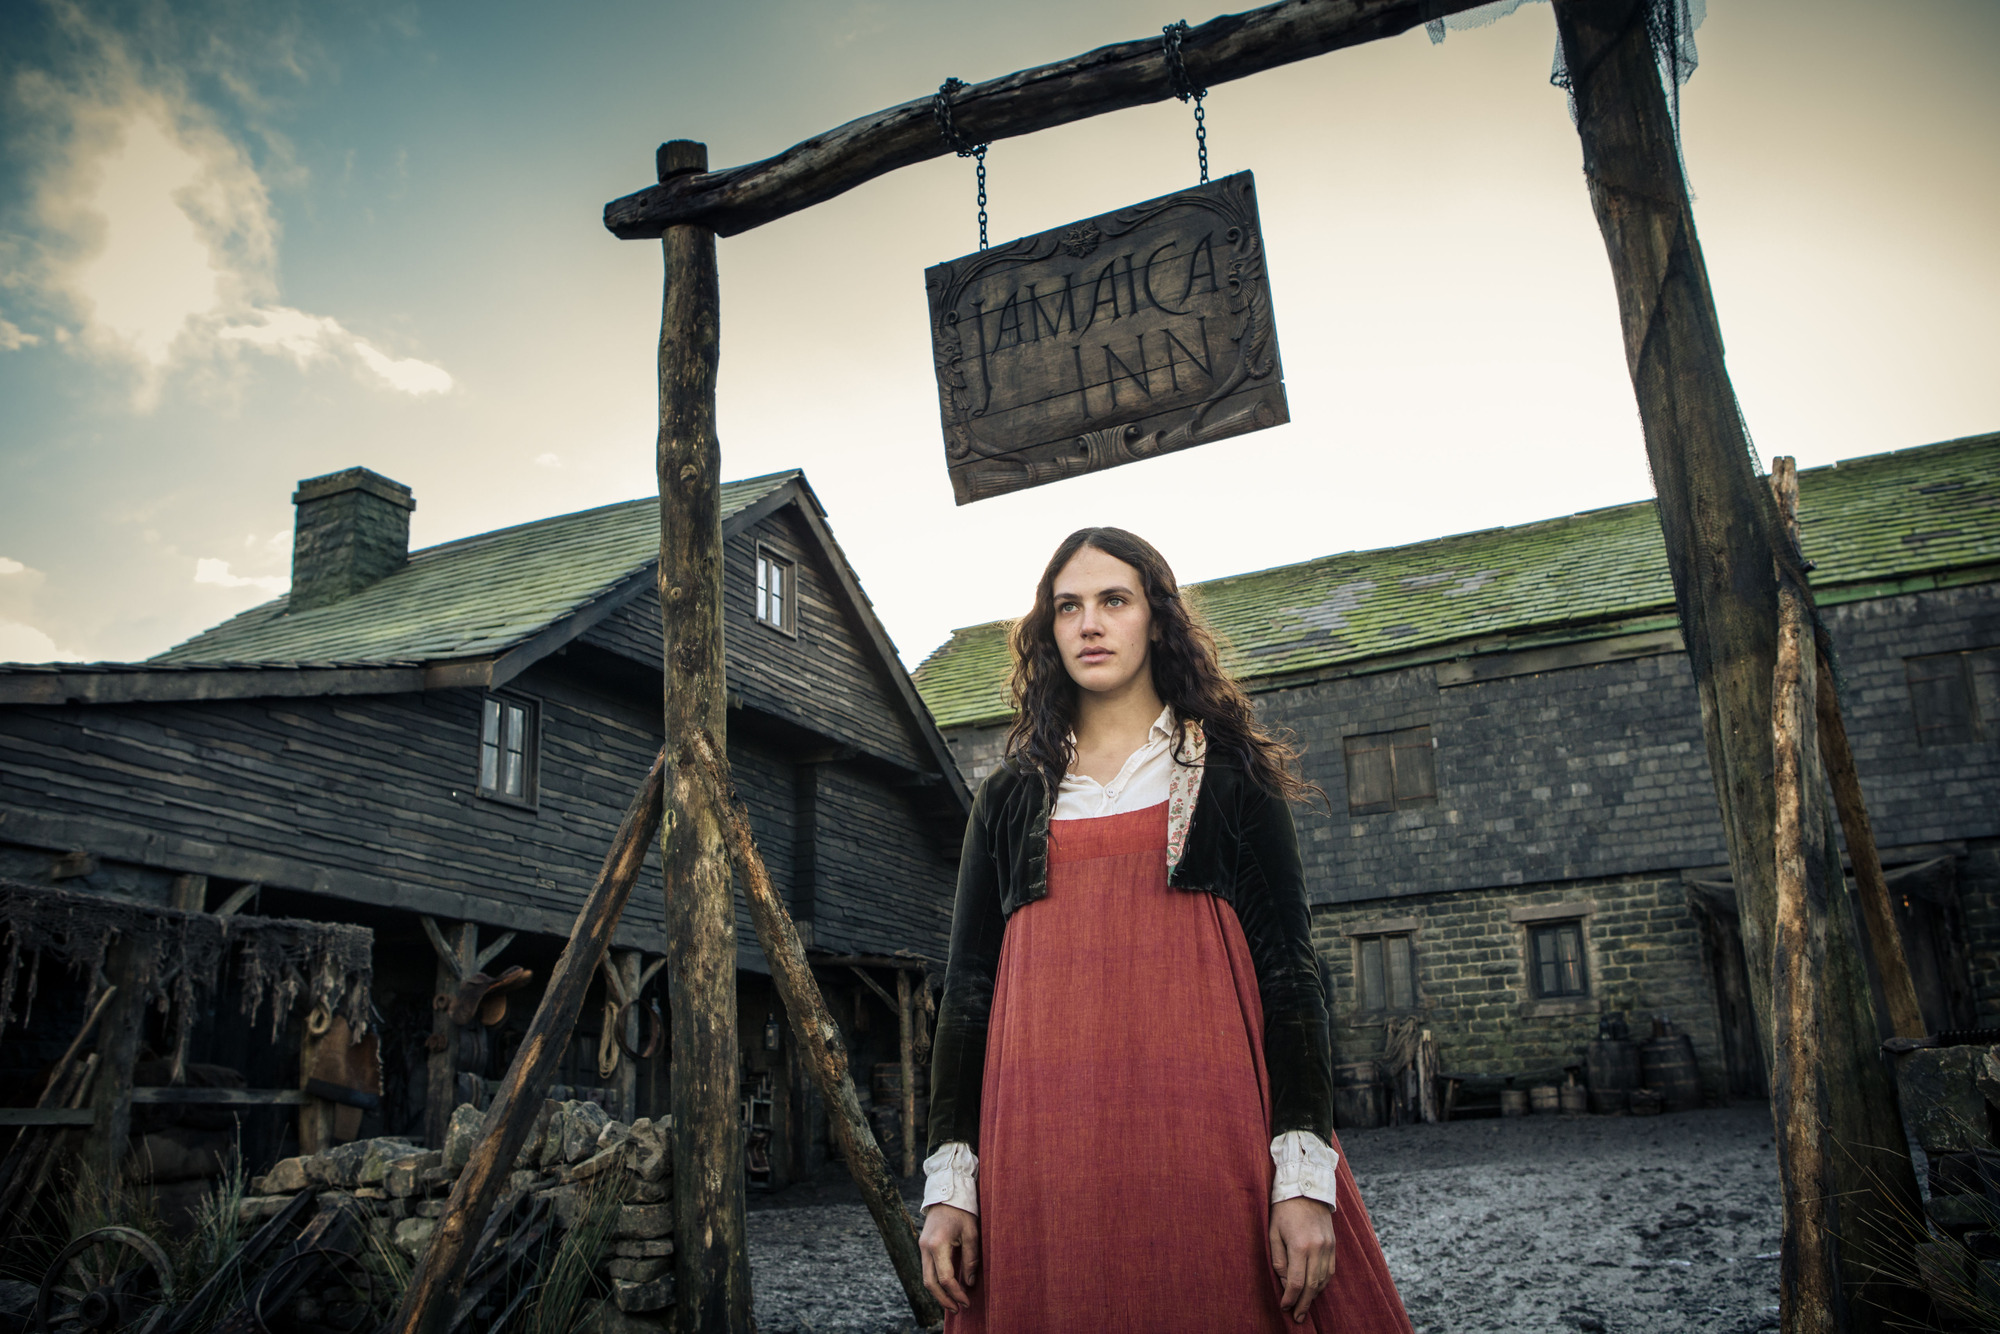 Jamaica Inn: Great bank holiday drama or the BBC playing it safe?